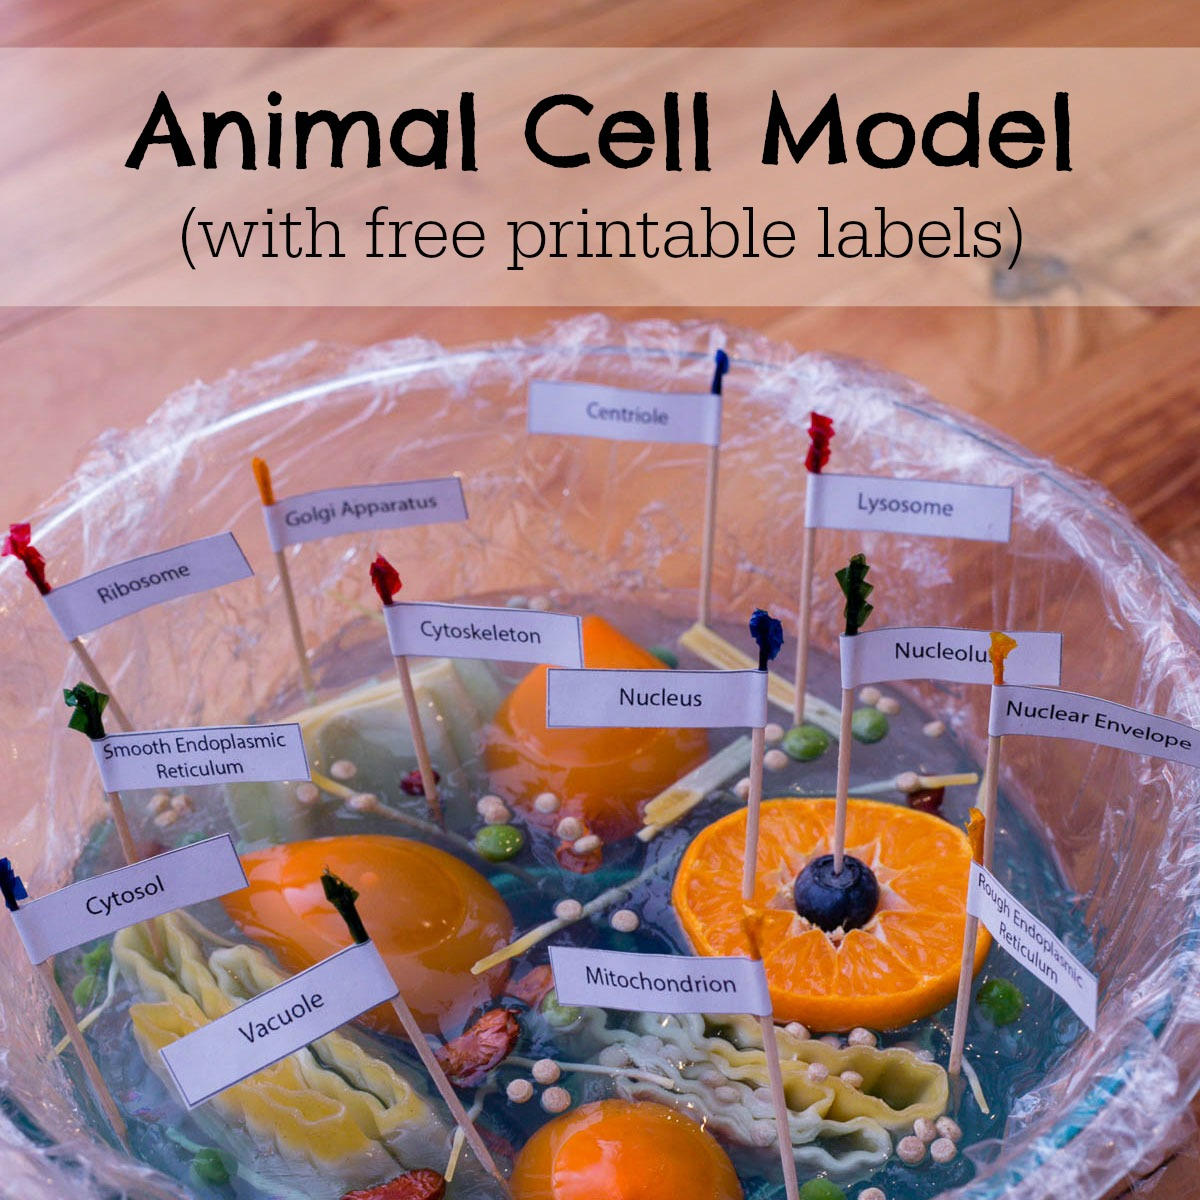 Animal cell model for kids with flags